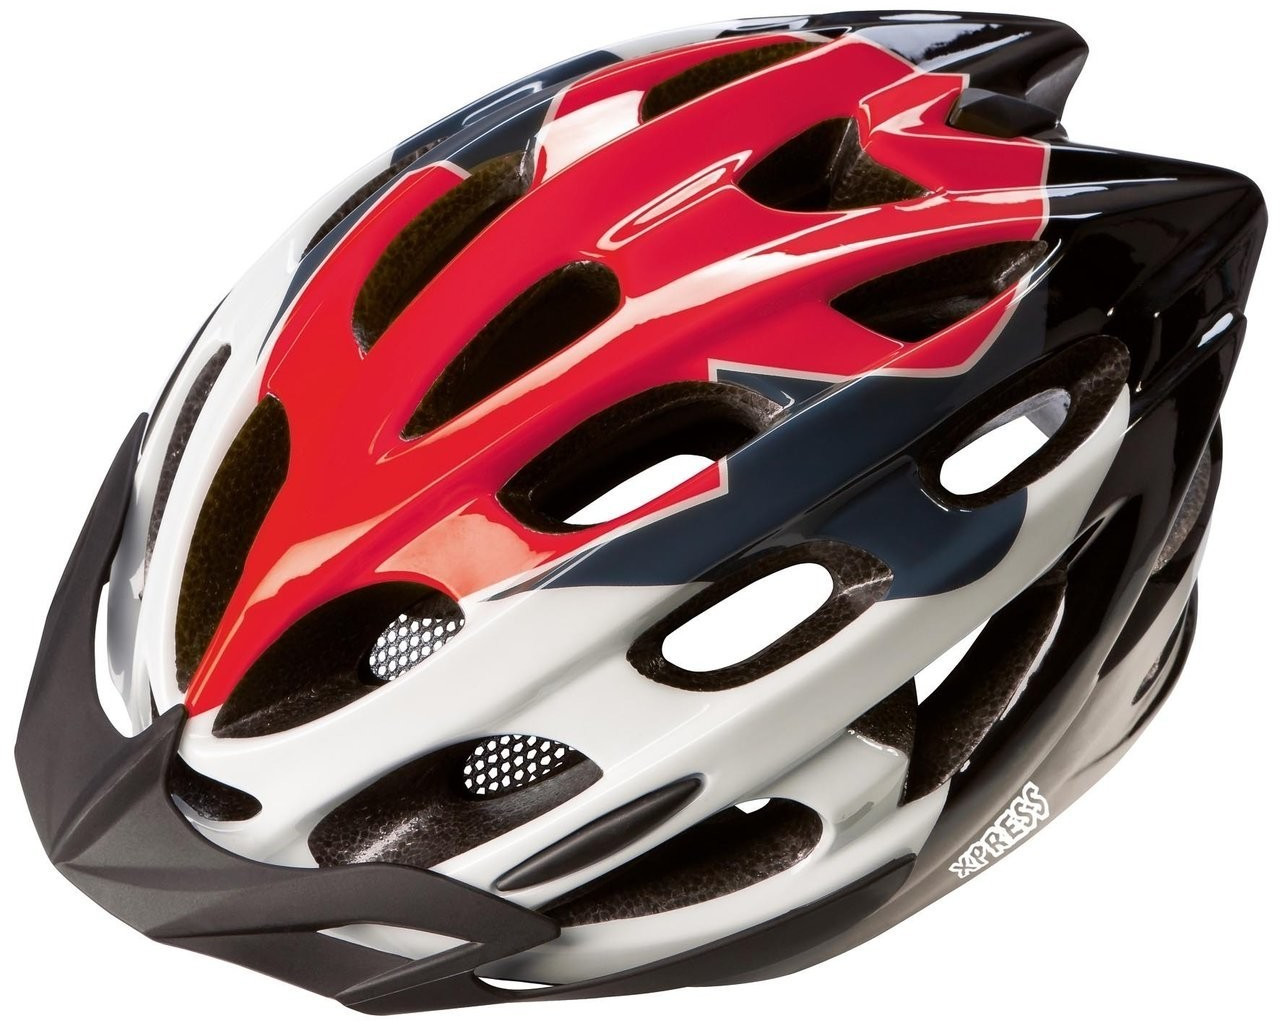 Walser Xpress red